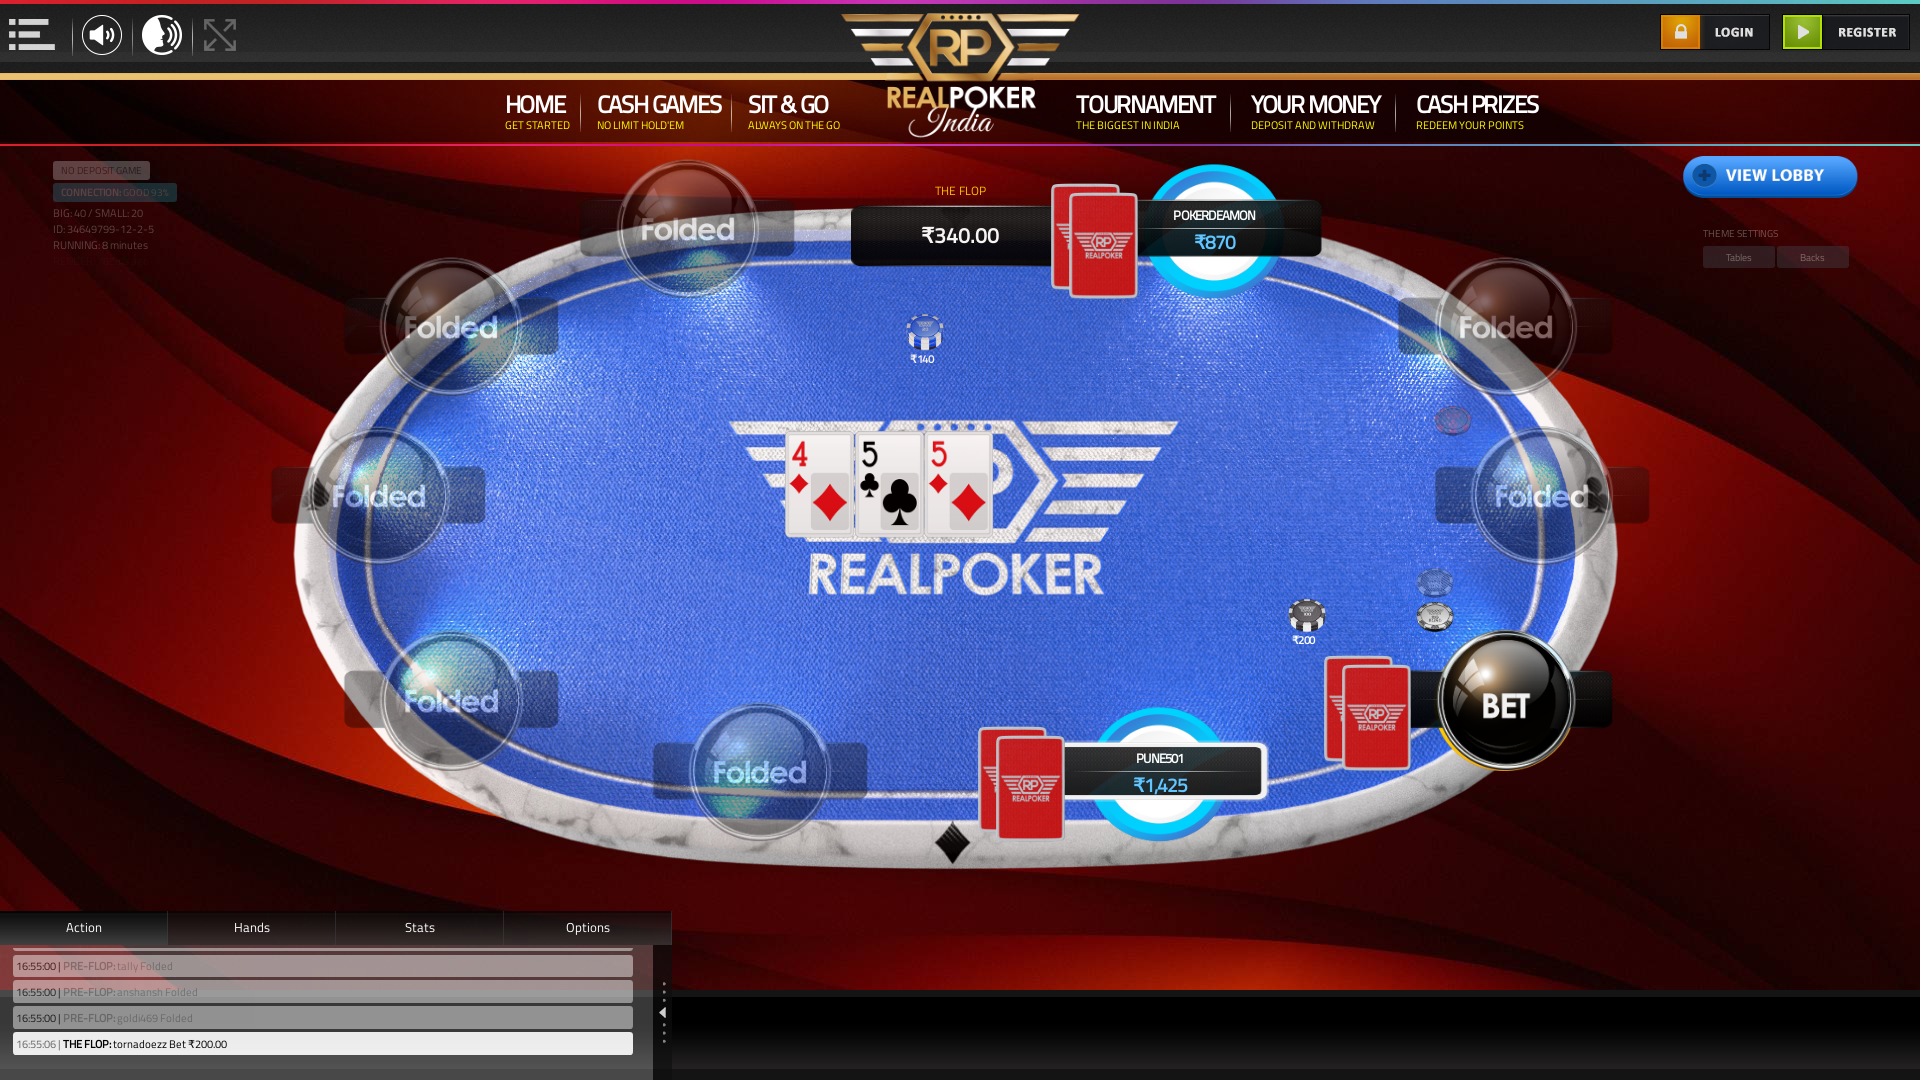 Nizamuddin, New Delhi Poker Website on the 26th November